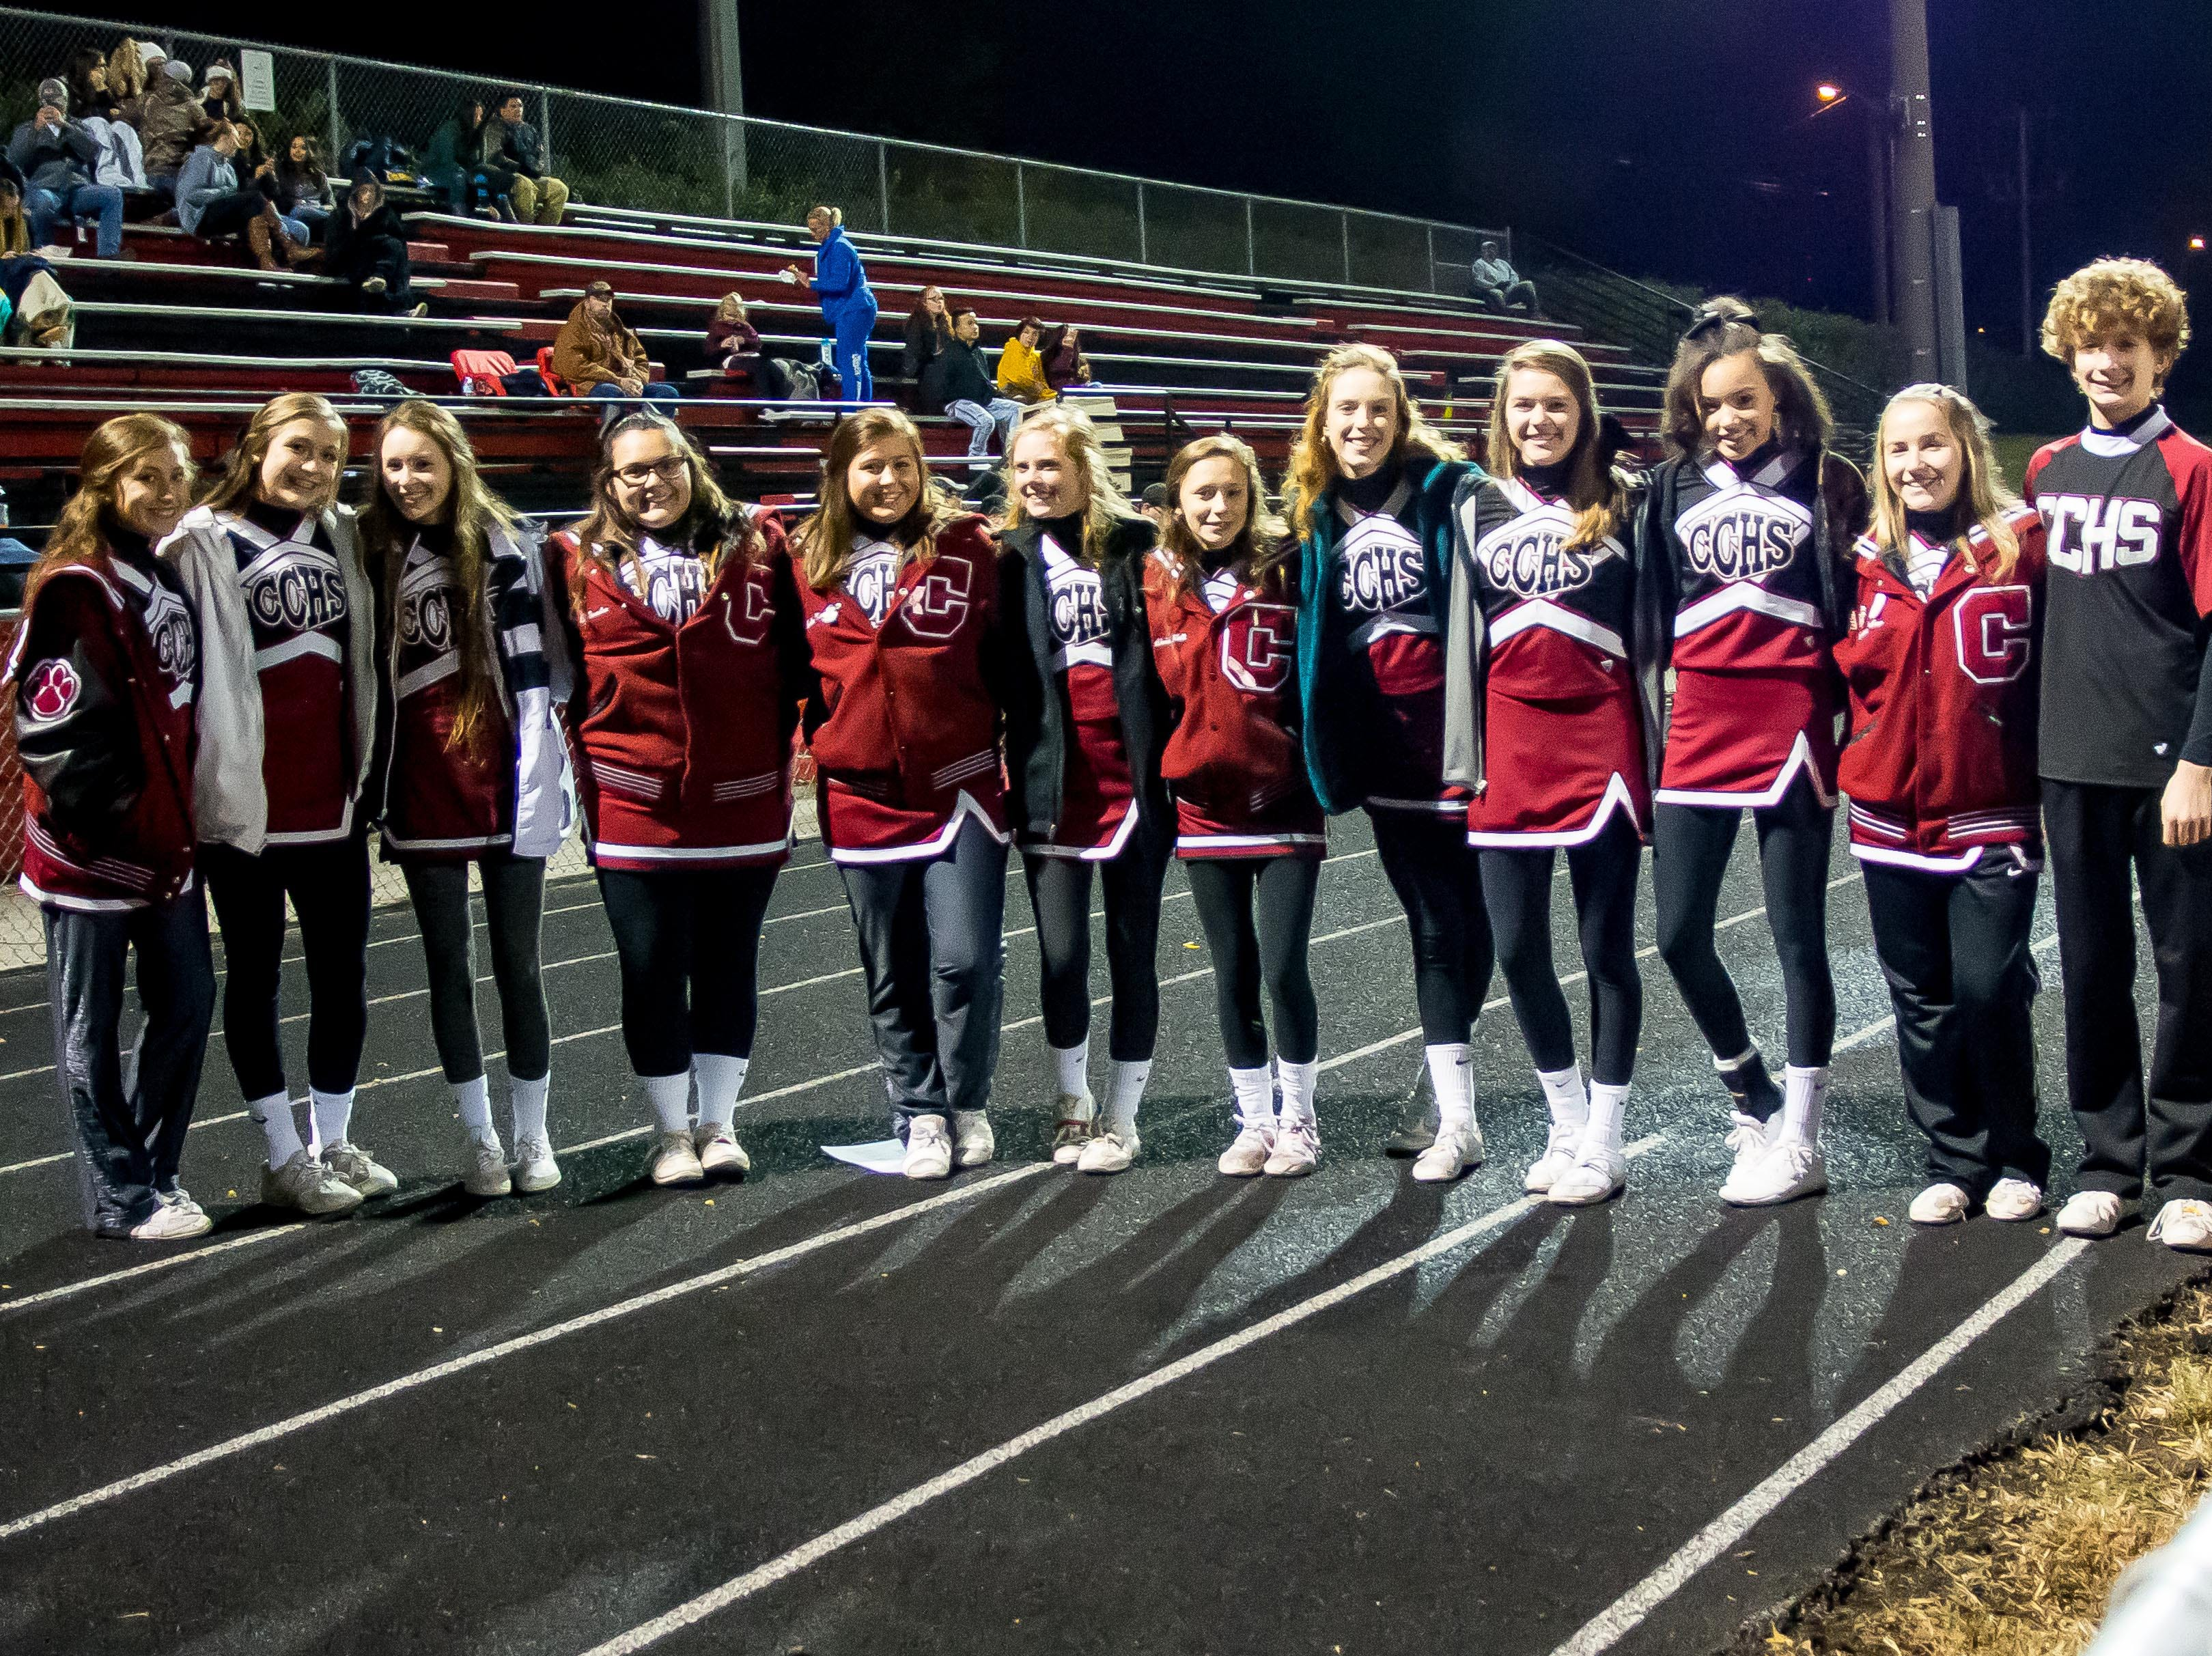 Cheatham County Lady Cubs Cheerleaders!